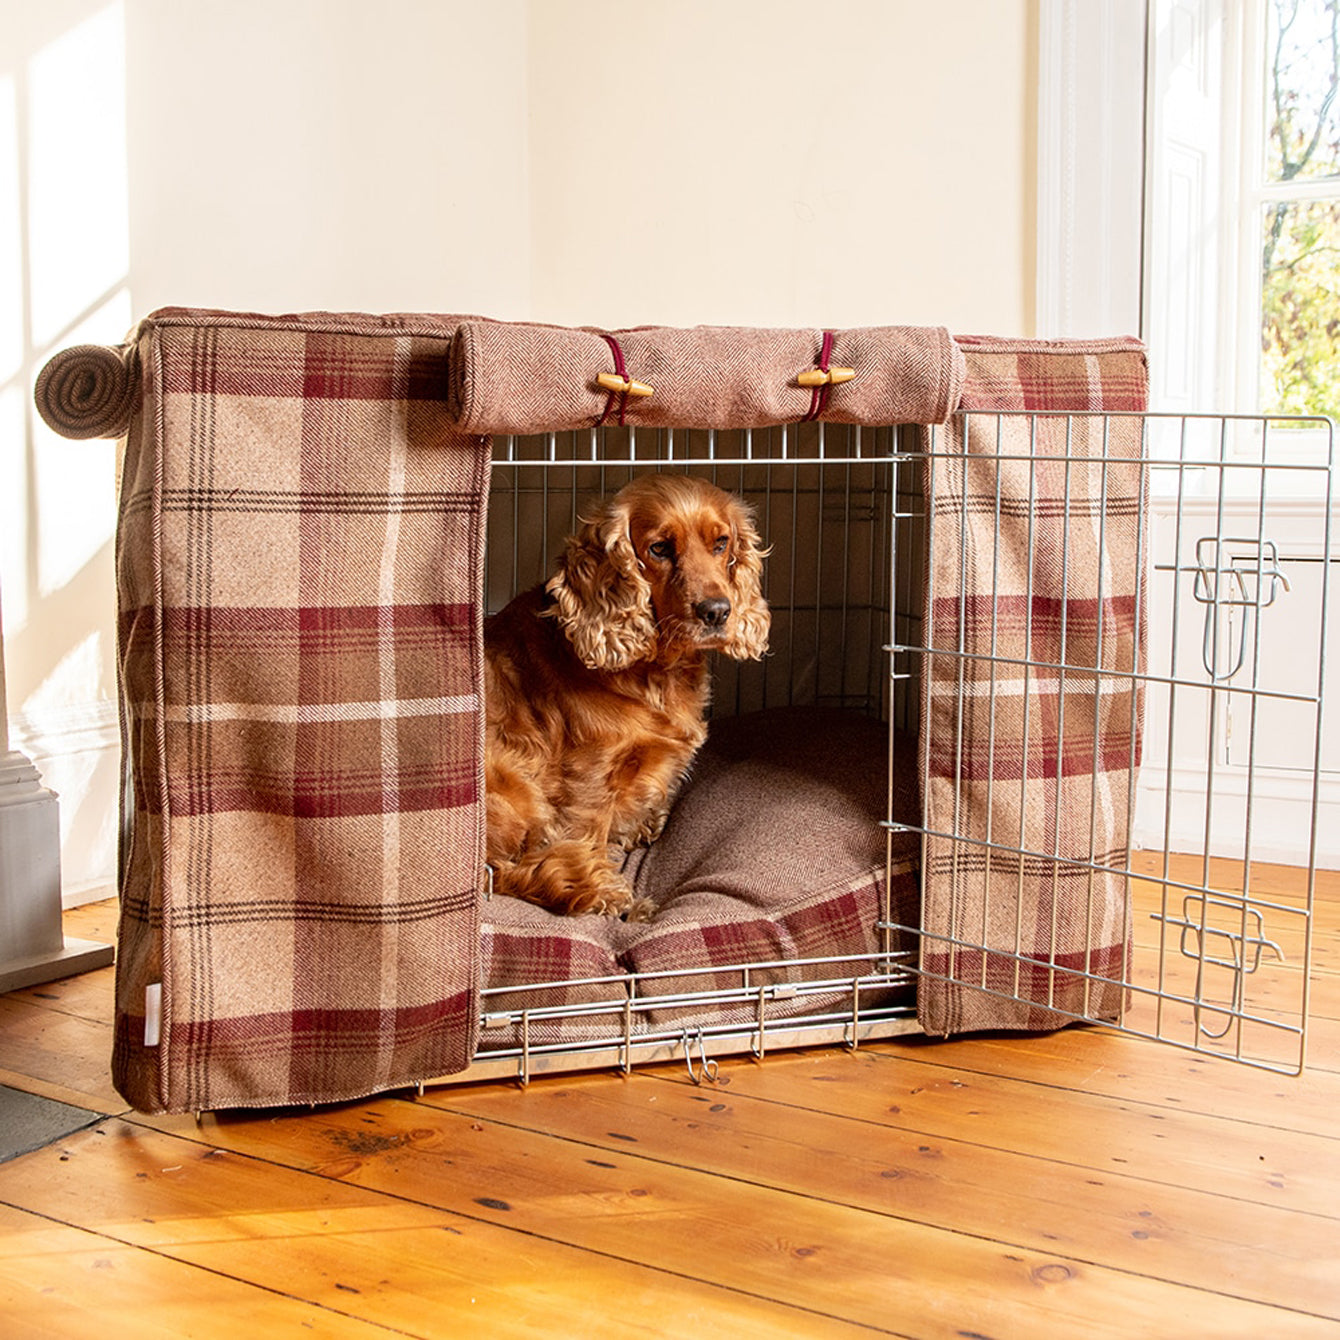 cocker spaniel sitting in her crate set